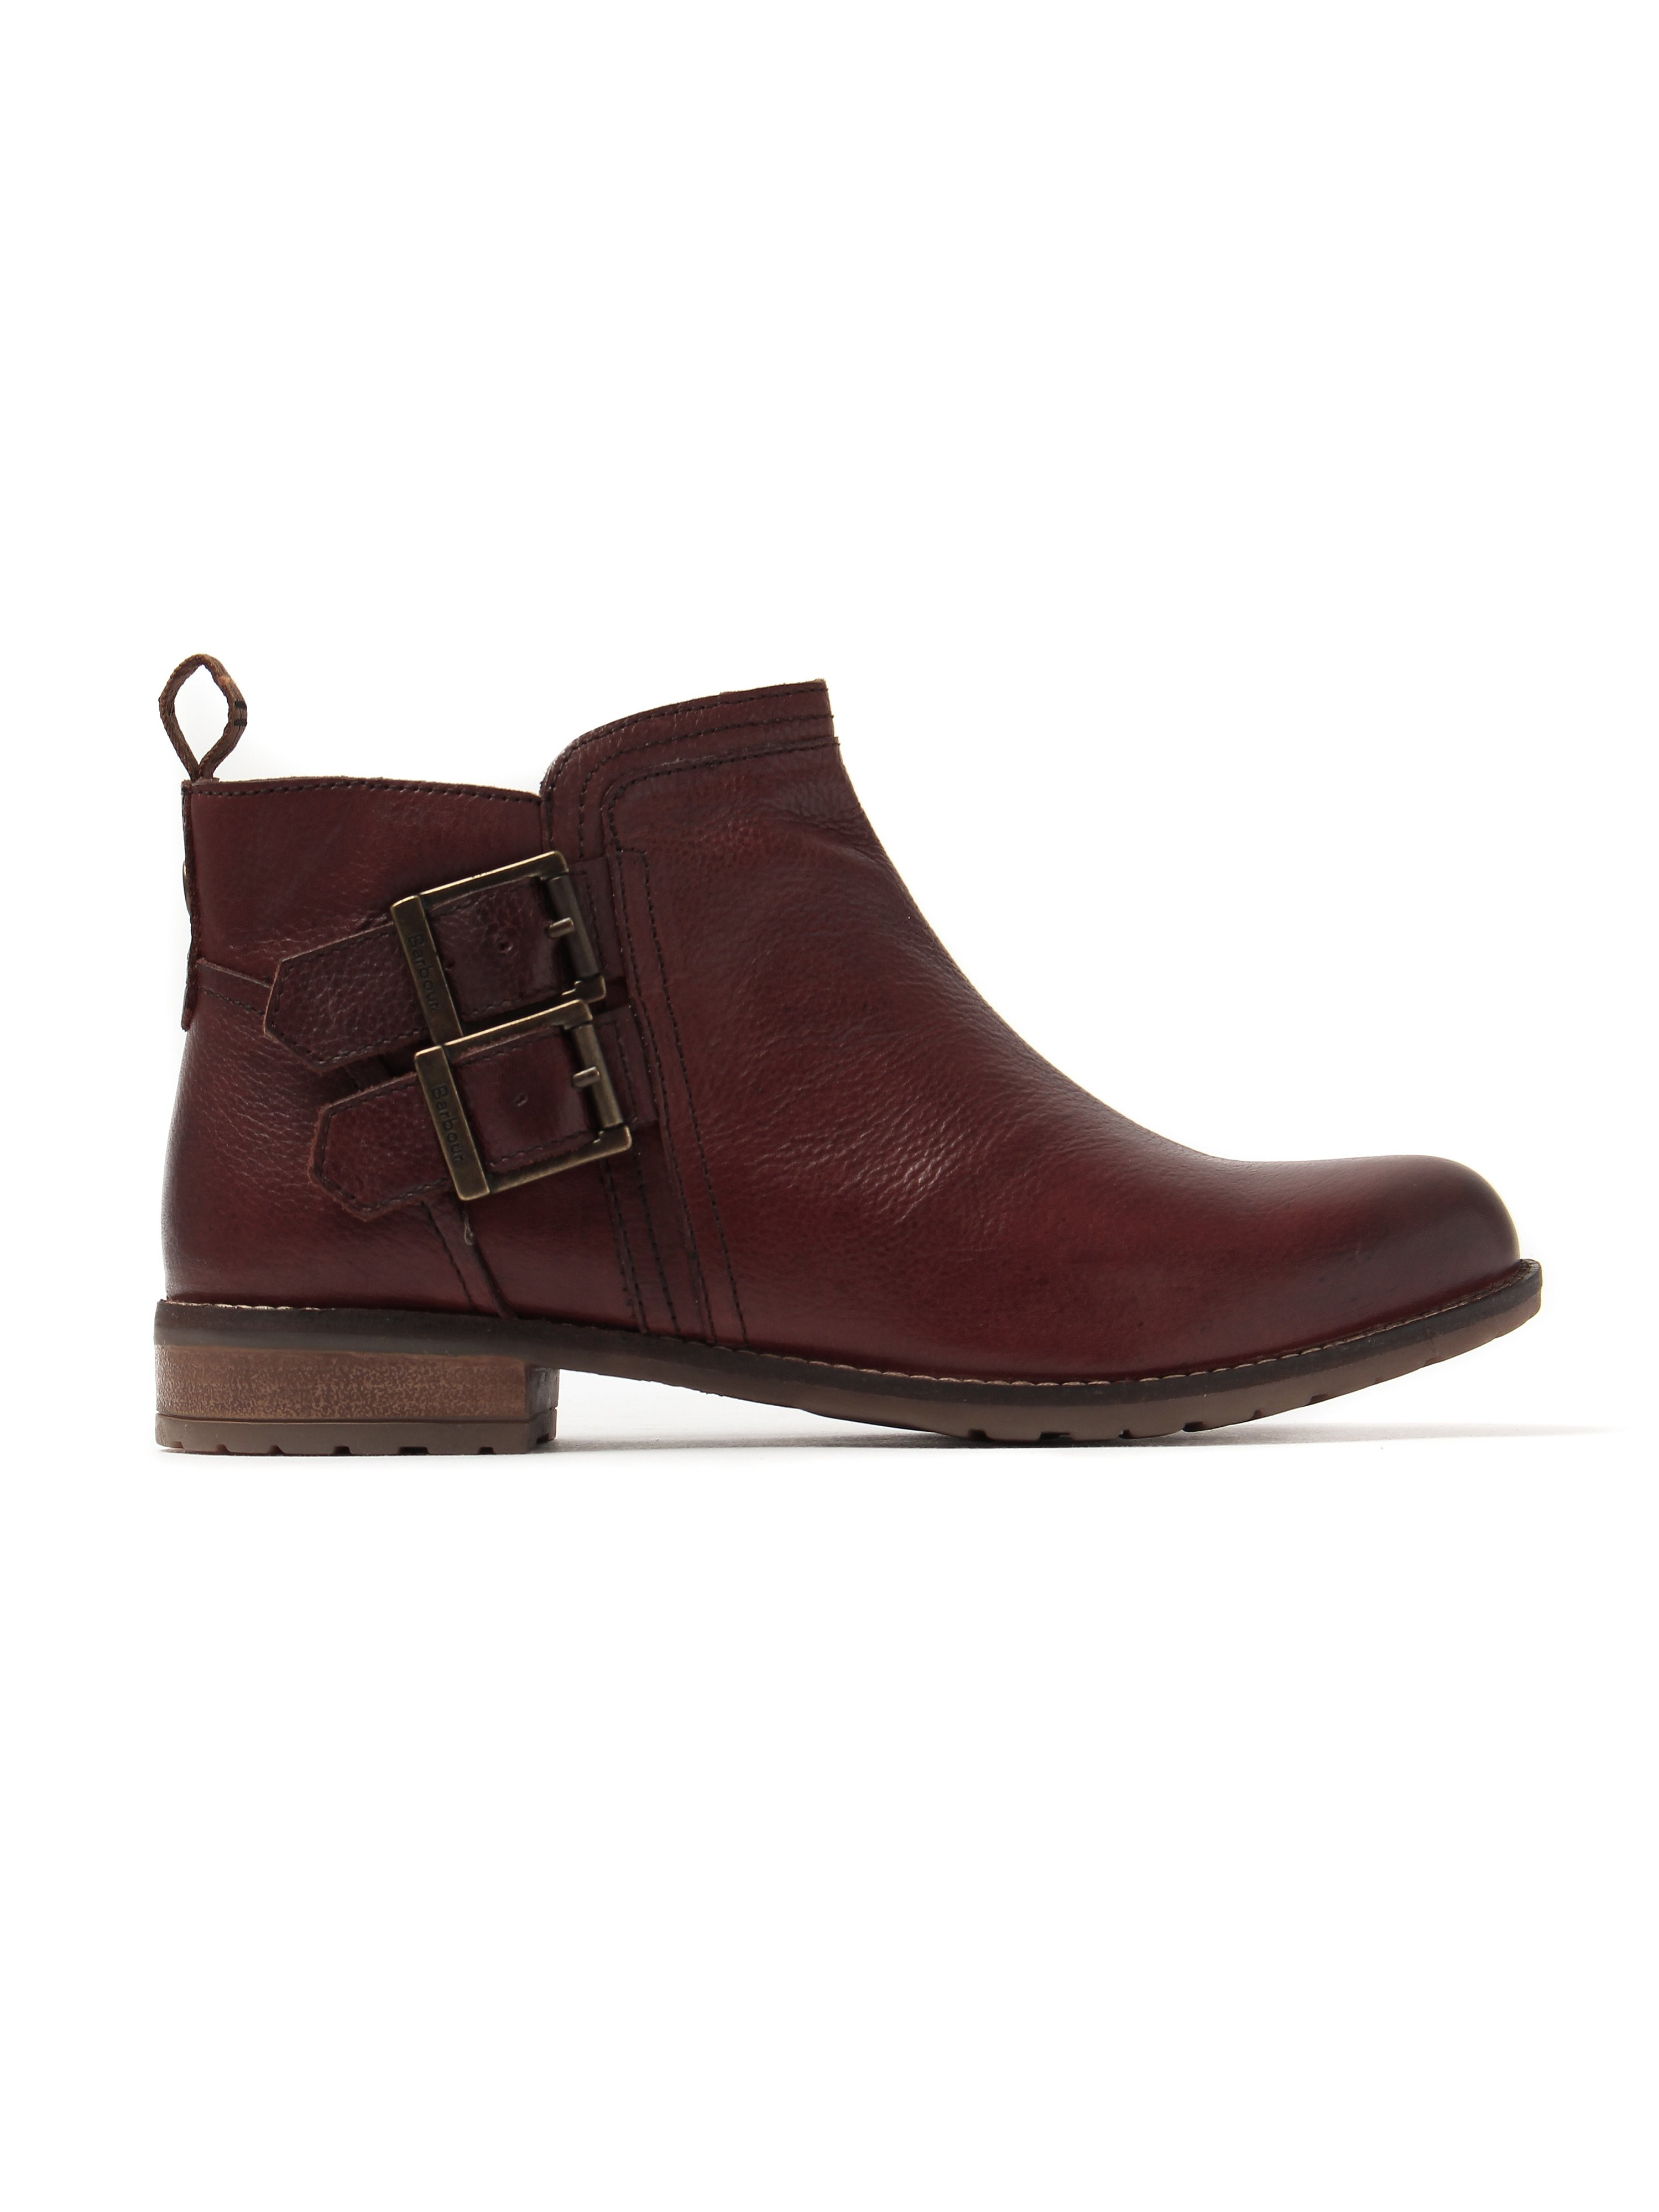 Barbour Women's Sarah Low Buckle Leather Ankle Boots - Chestnut